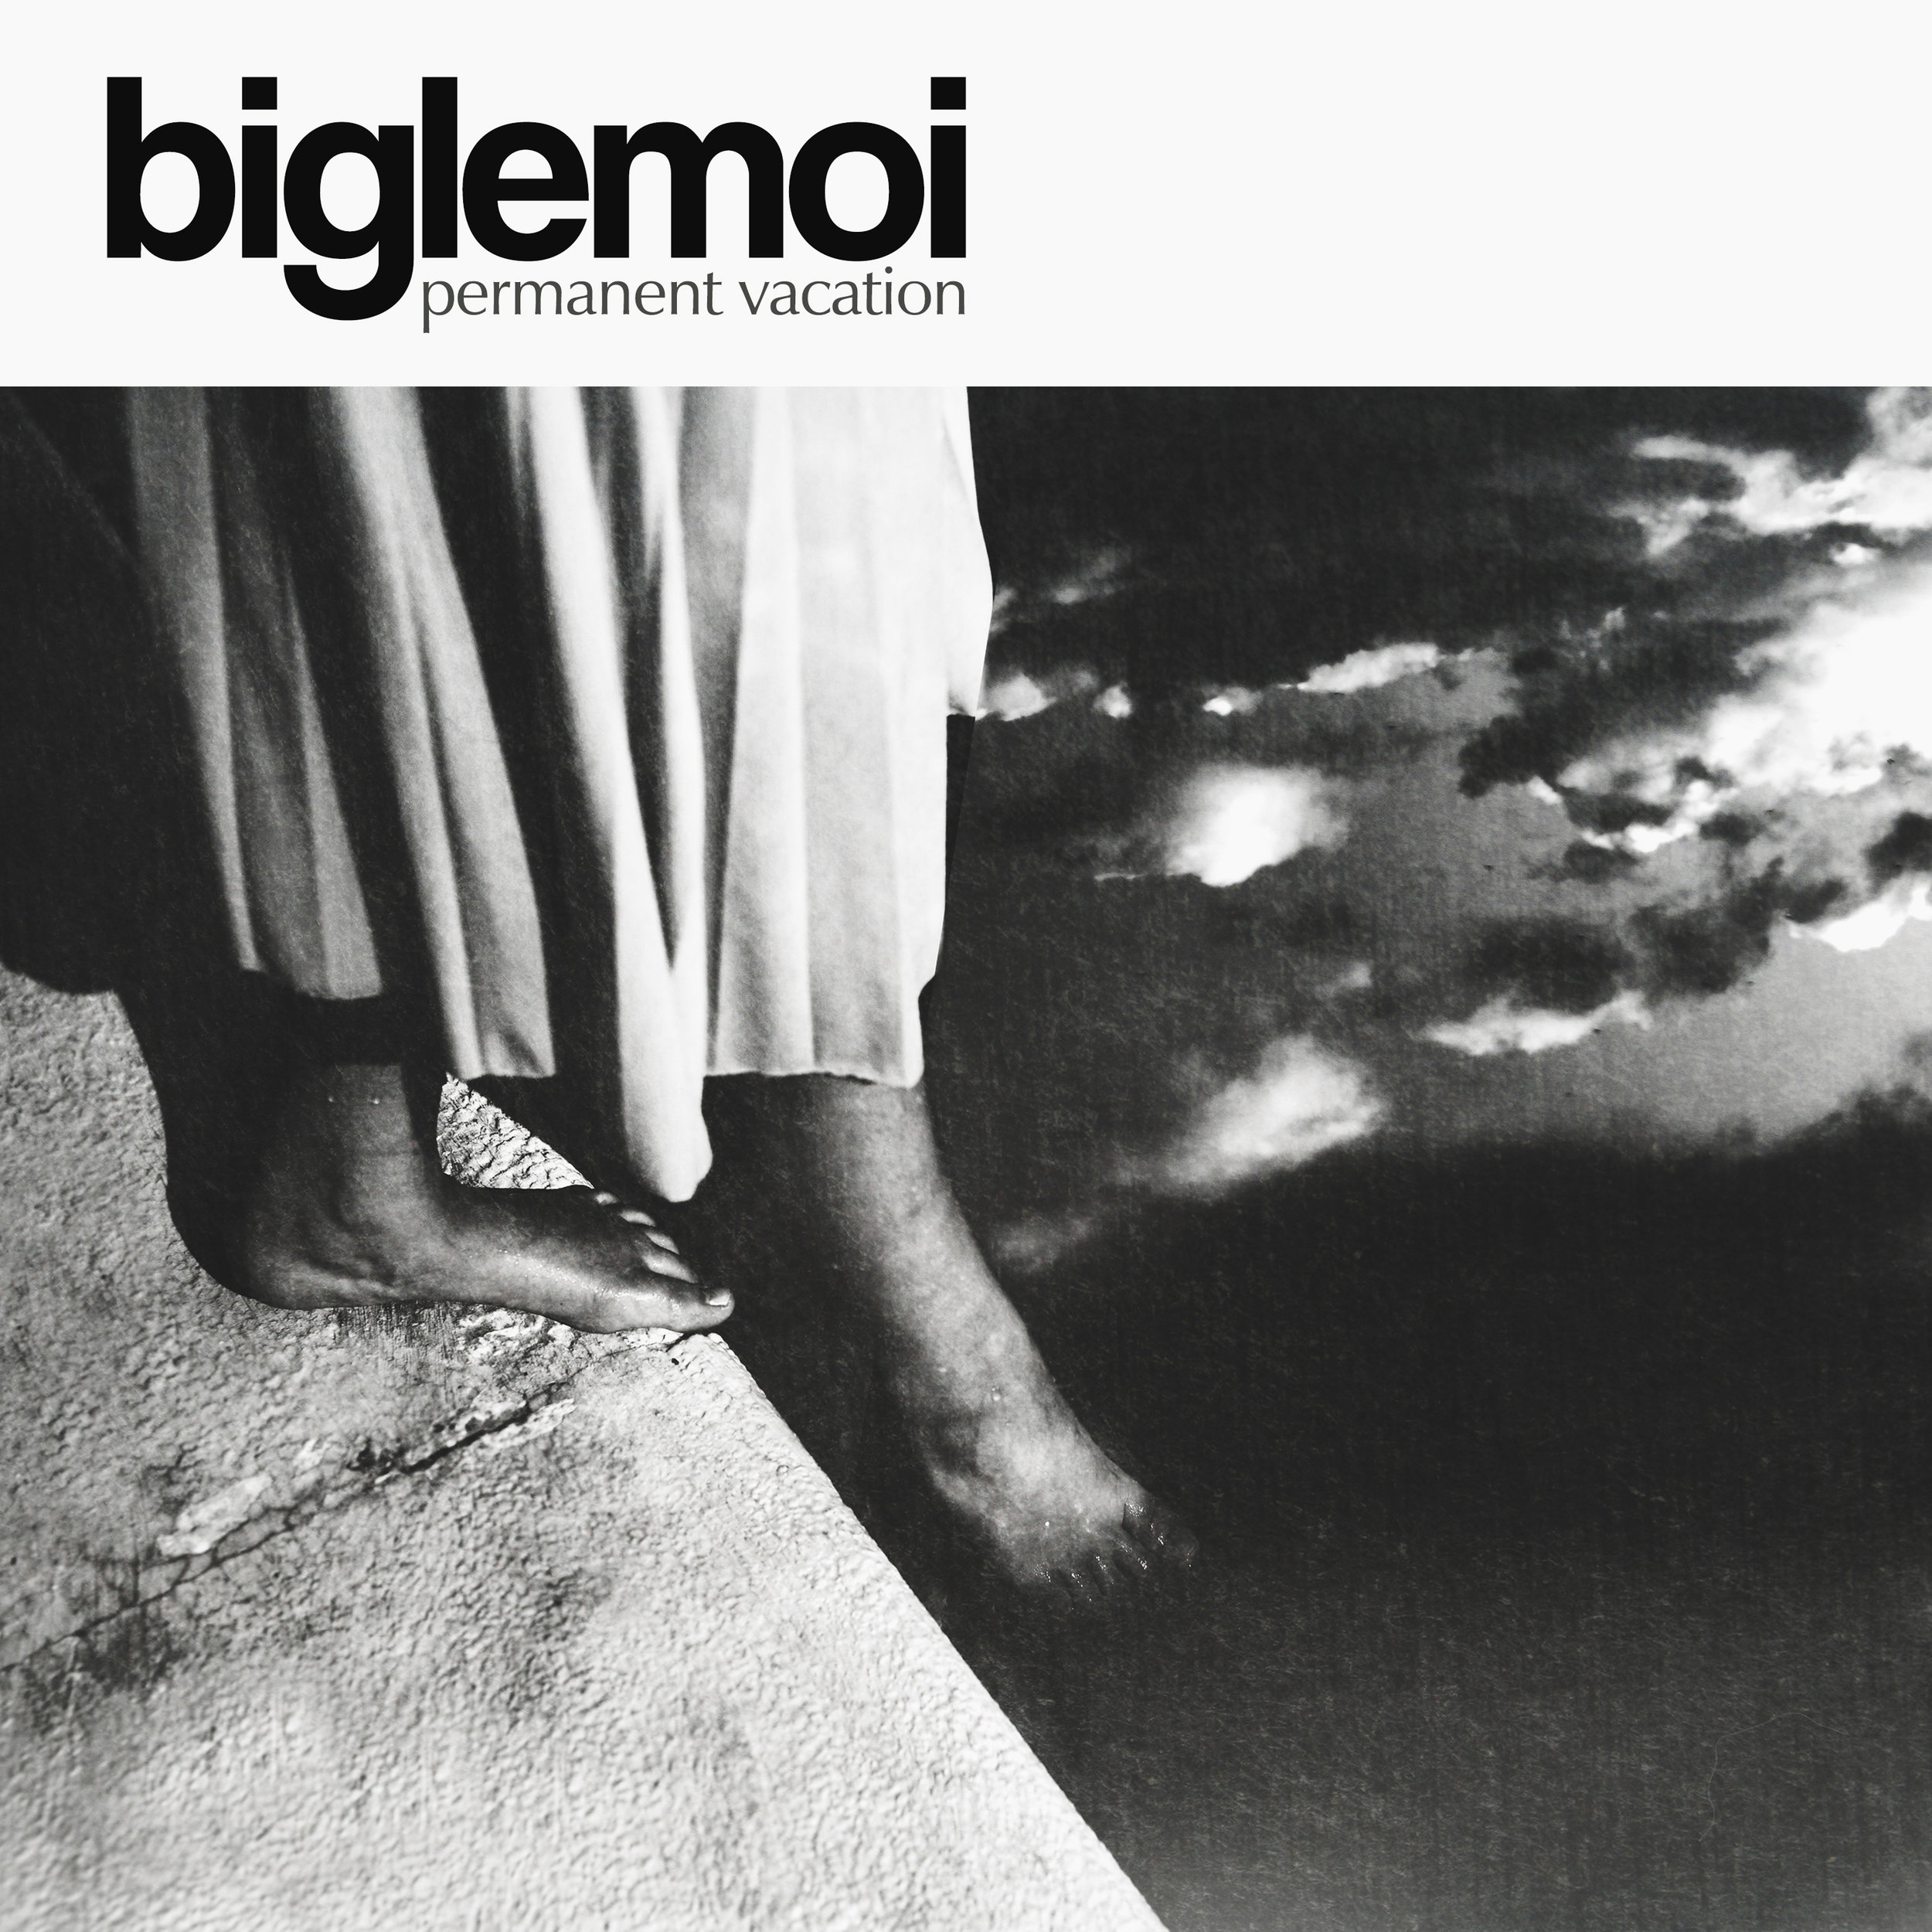 Biglemoi_album_Permanent_Vacation_hi_res_cover_team_Clermont.jpg